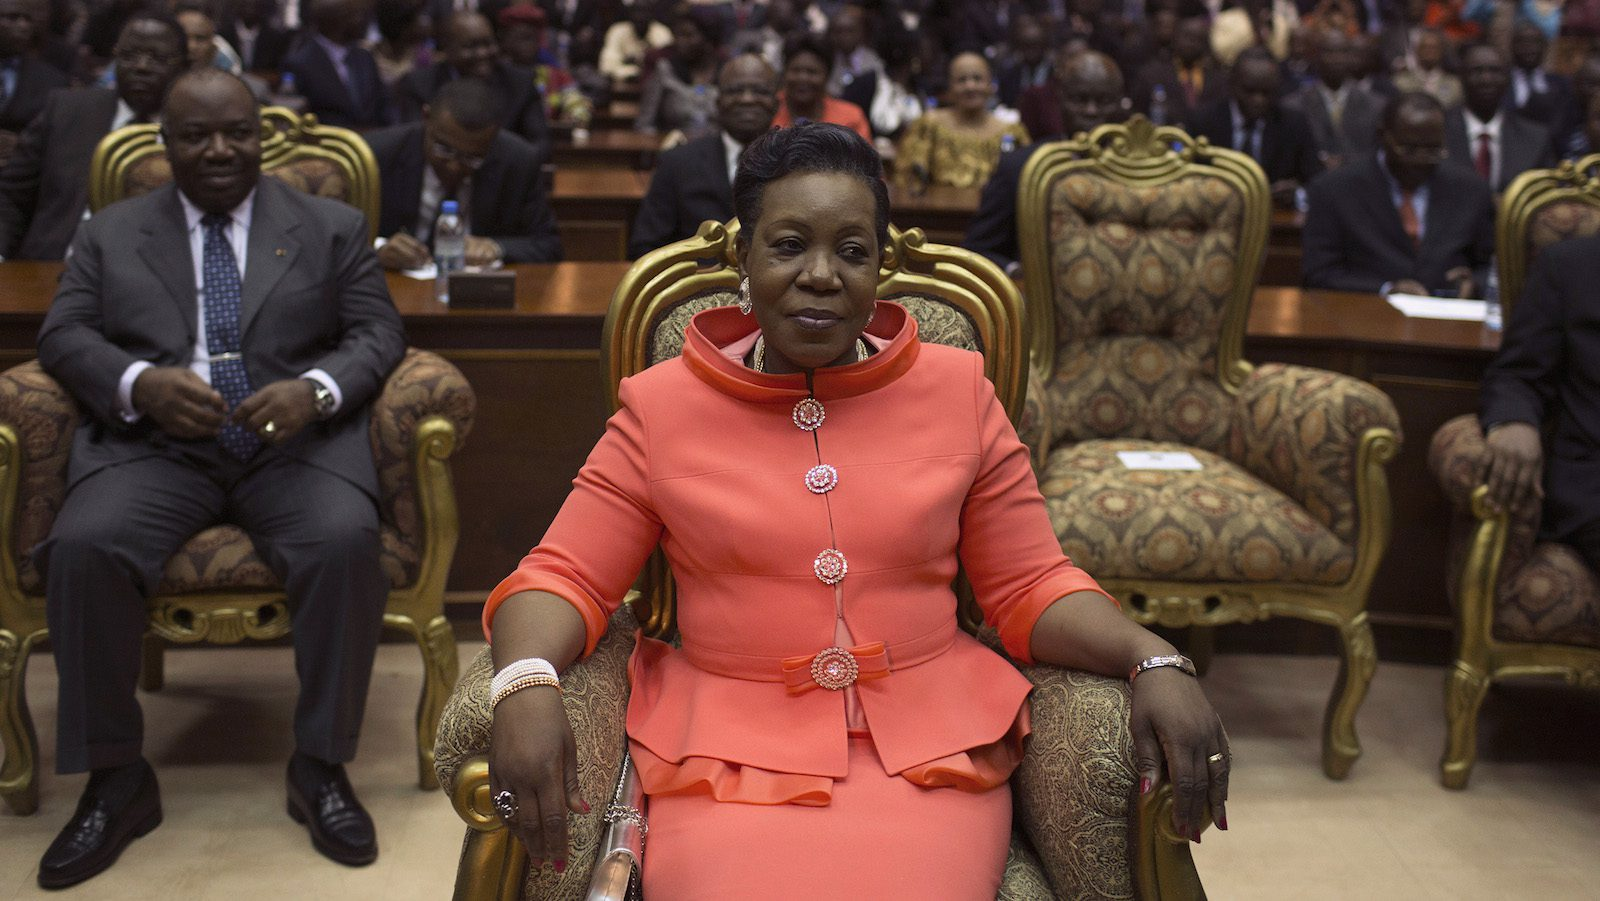 New parliamentary-elected interim President of the Central African Republic Samba-Panza sits prior to her swearing-in ceremony at the National Assembly in the capital Bangui